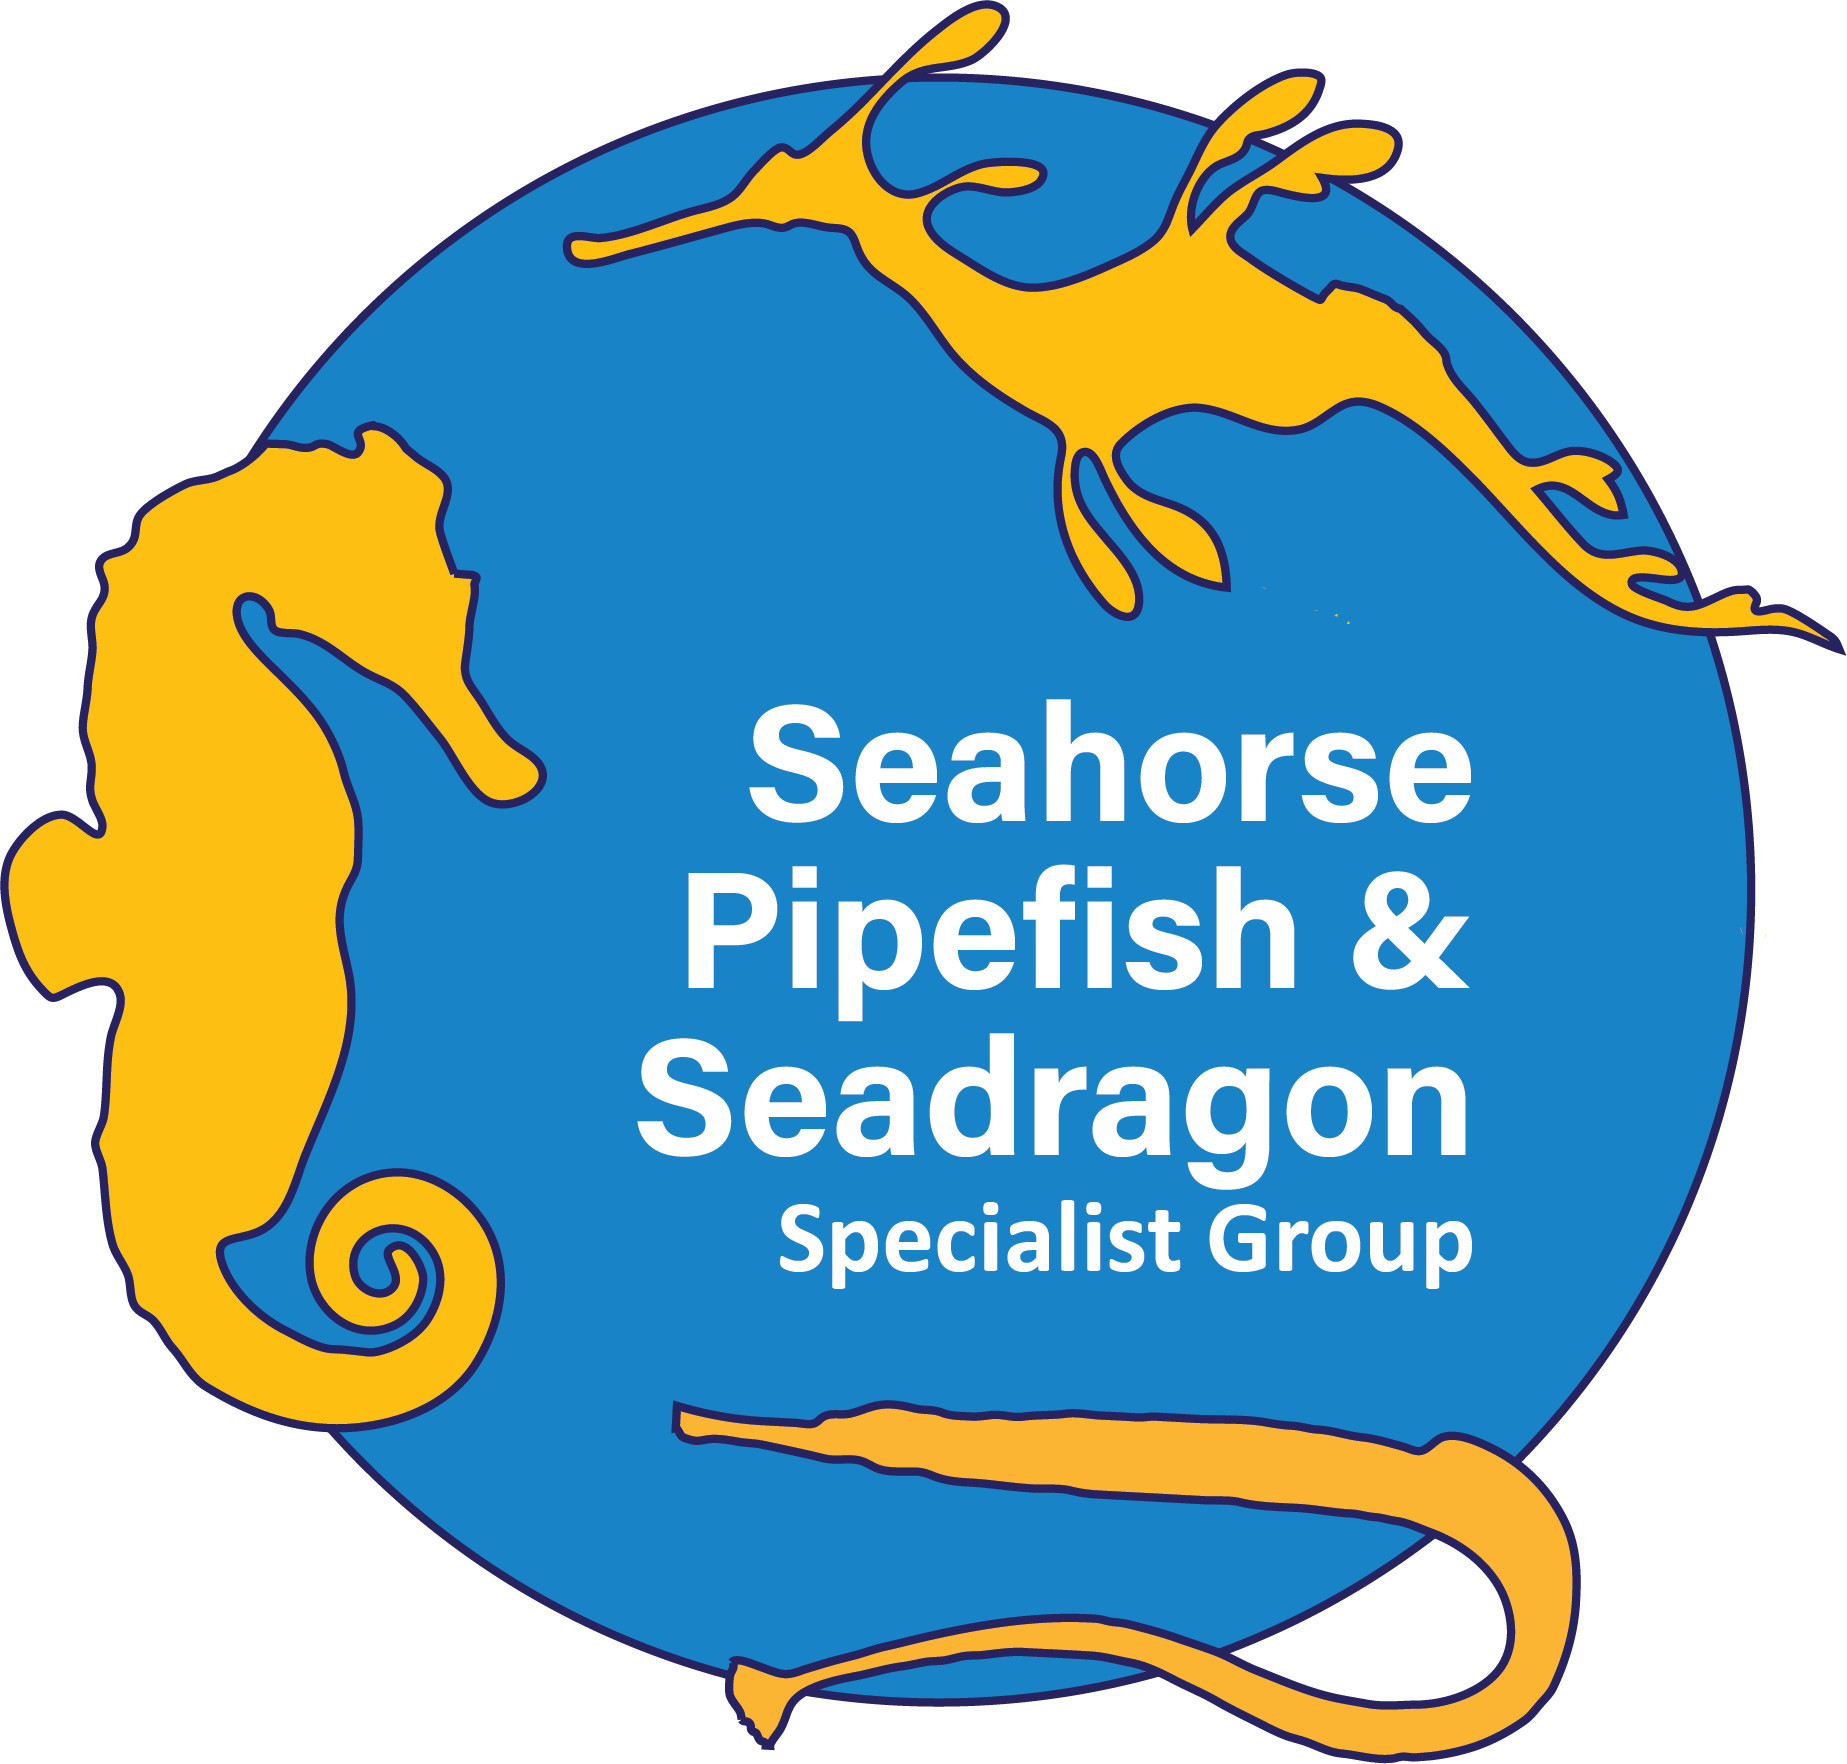 IUCN Seahorse, Pipefish and Seadragon specialist group